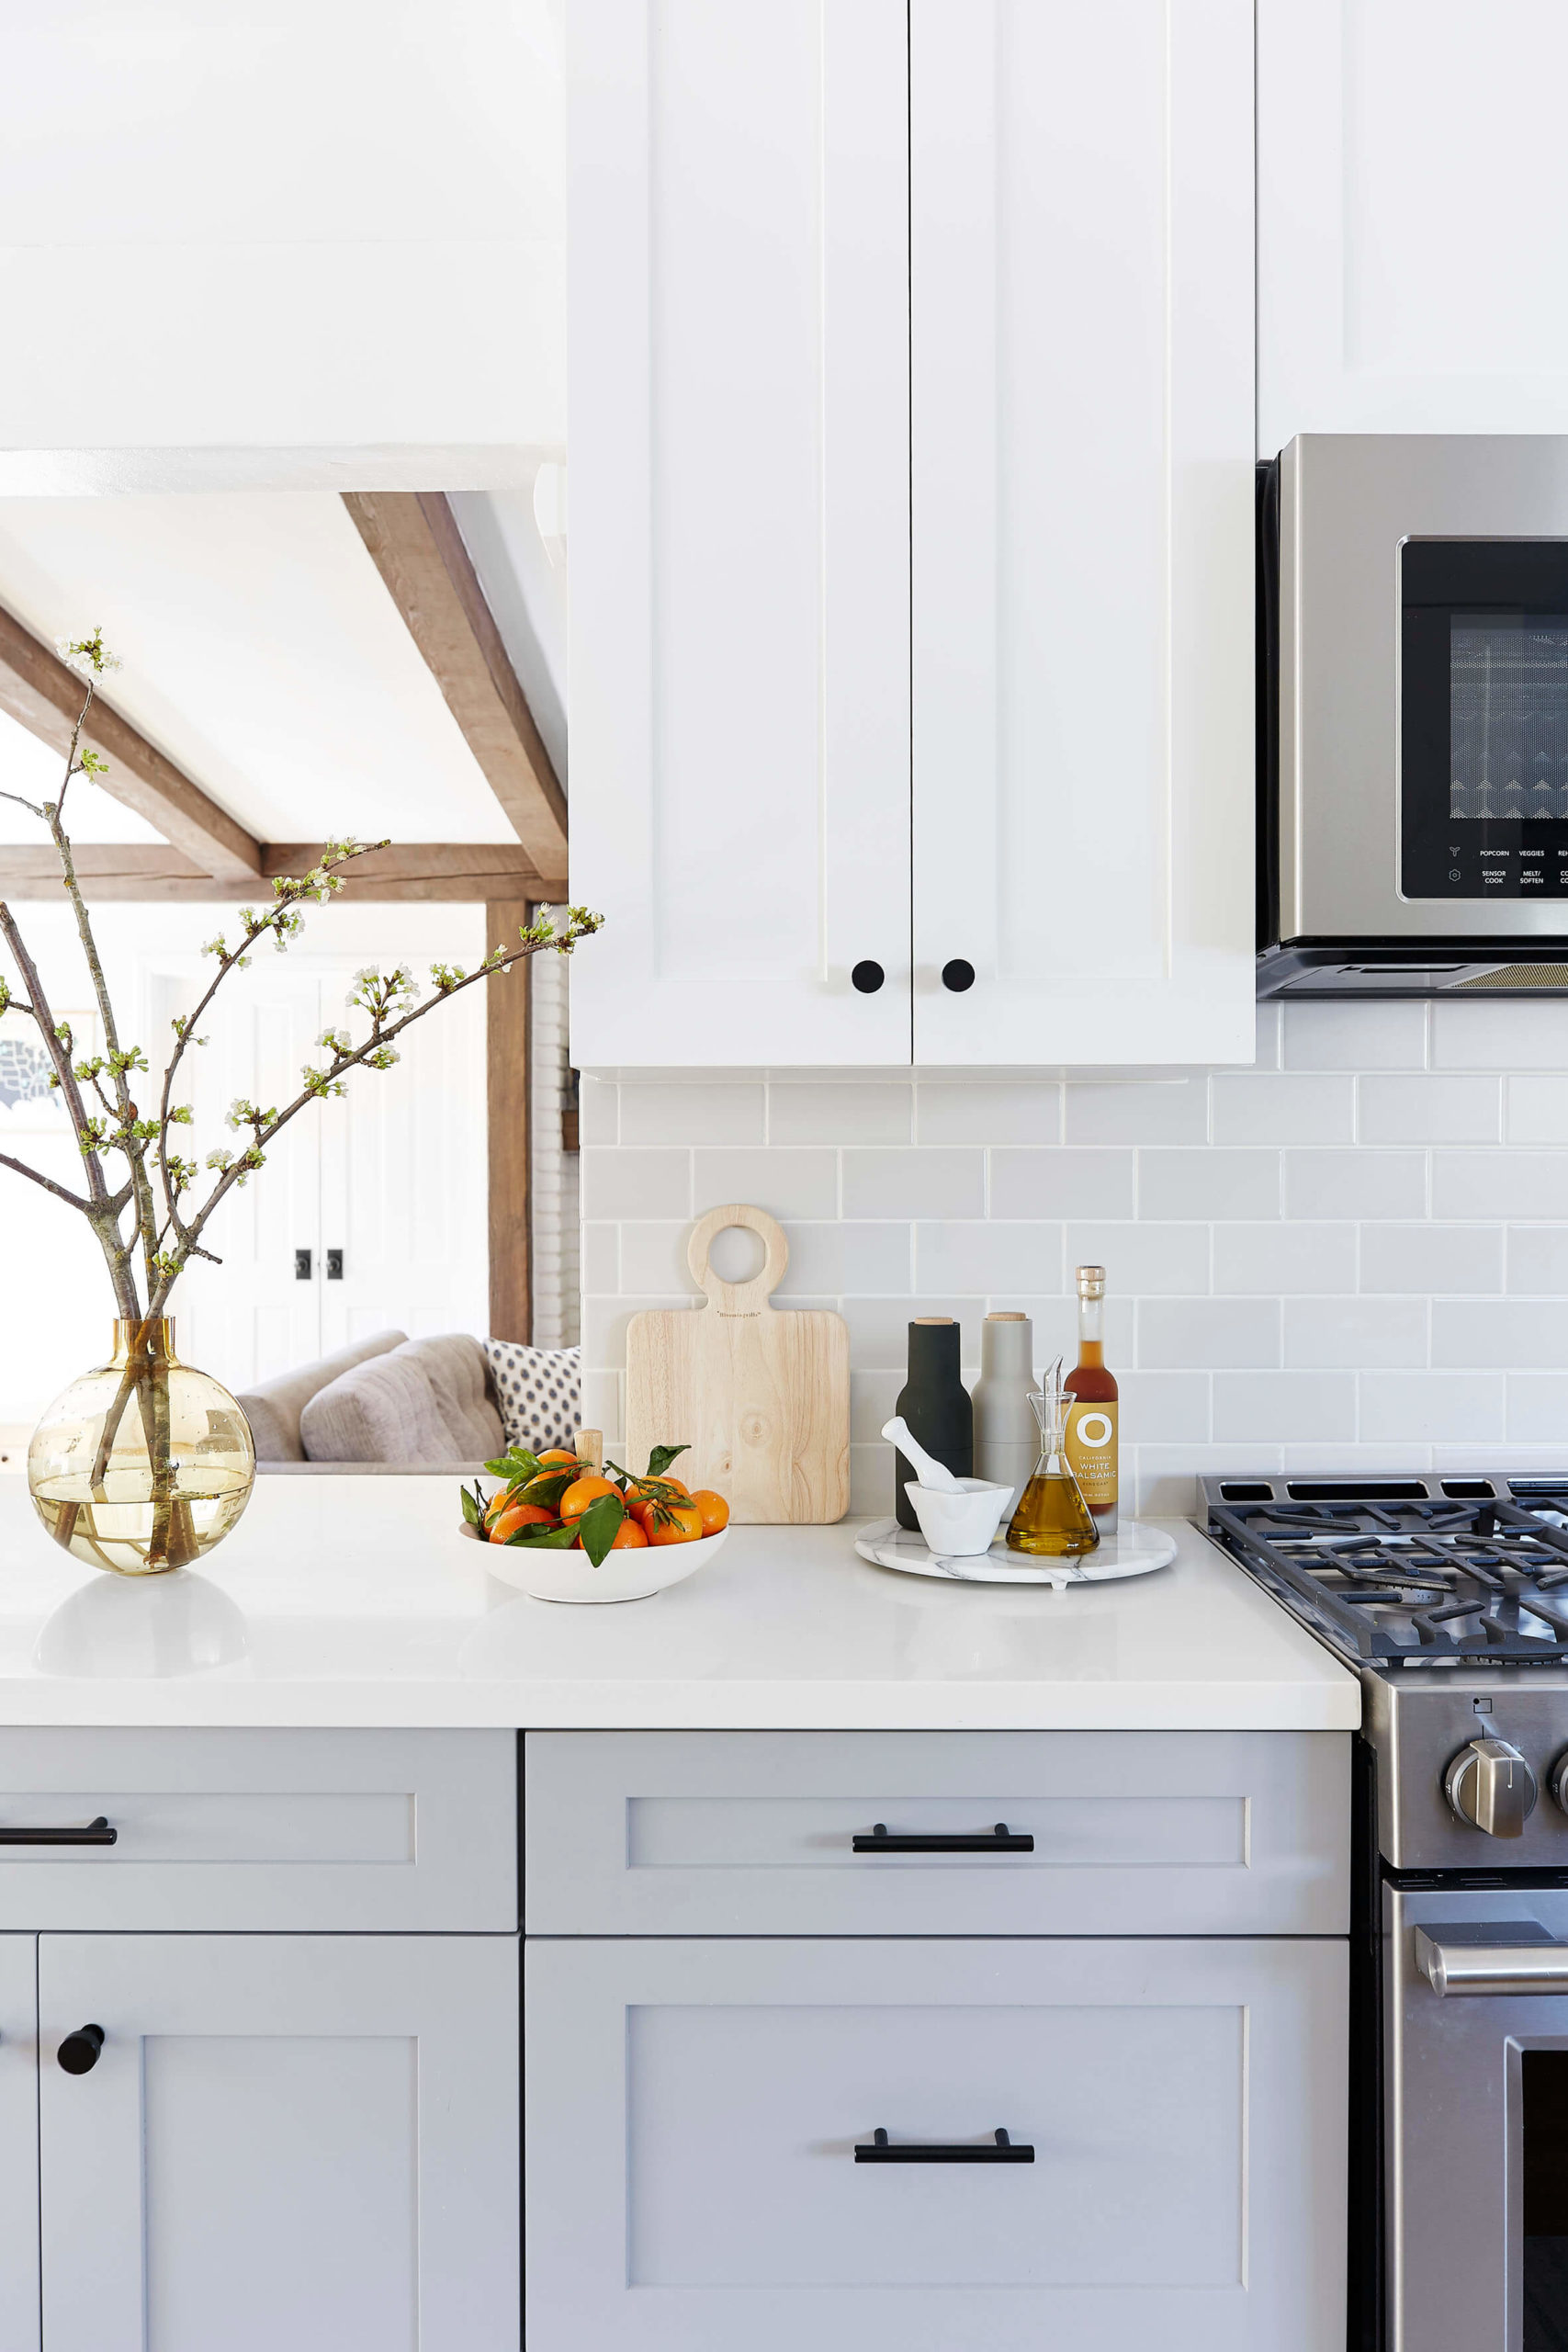 Modern kitchen styling interior design by Ginny Macdonald Design